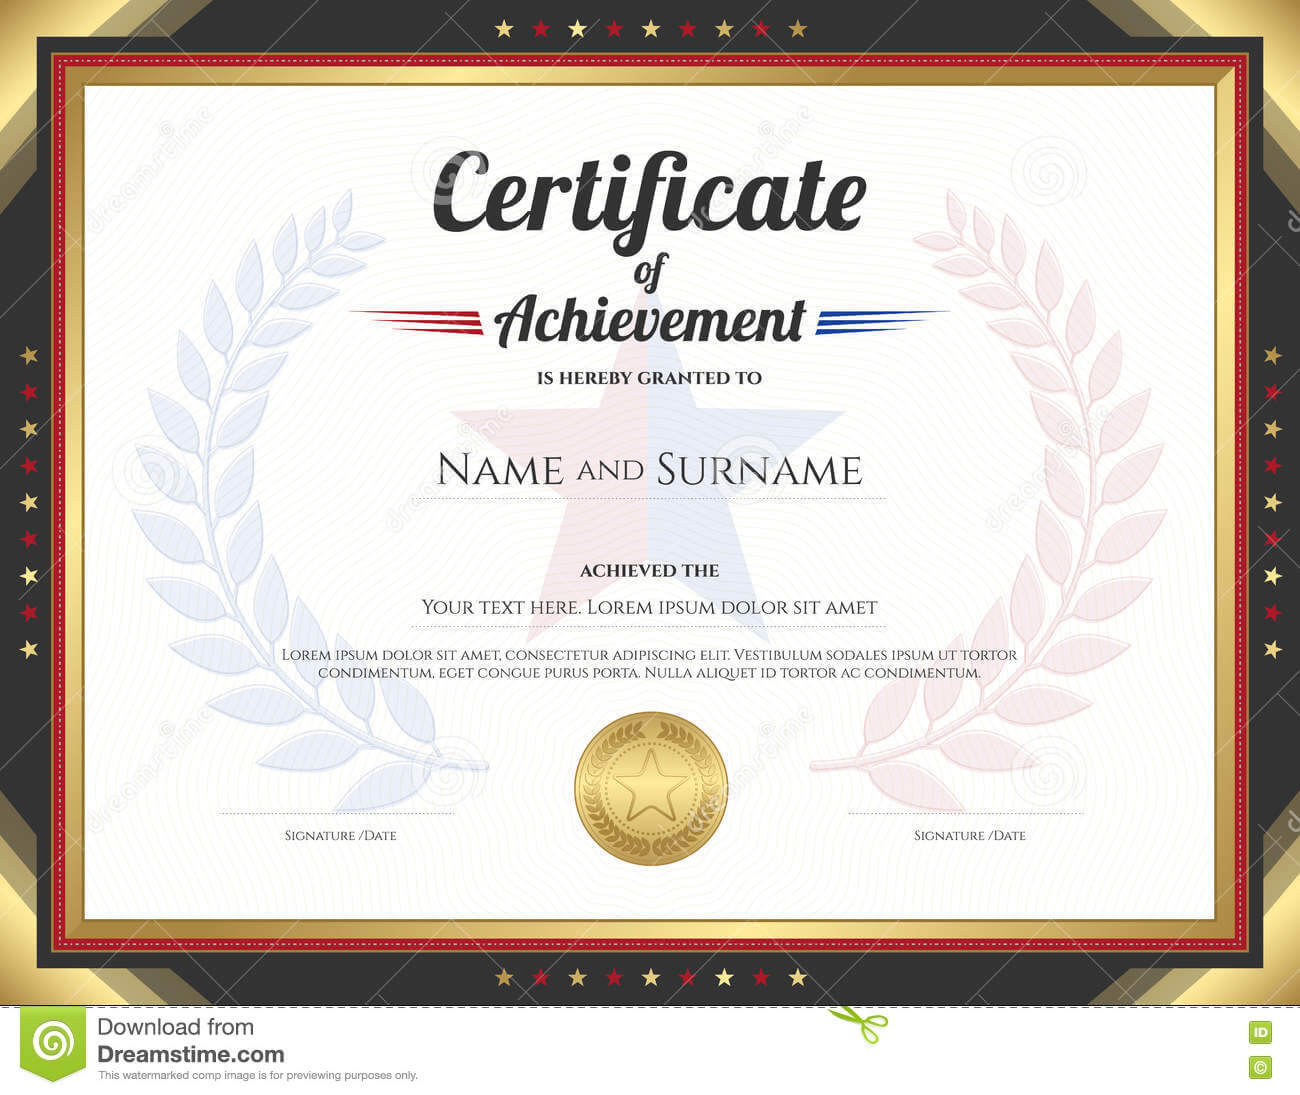 Certificate Of Achievement Template With Gold Border Theme Regarding Certificate Of Accomplishment Template Free